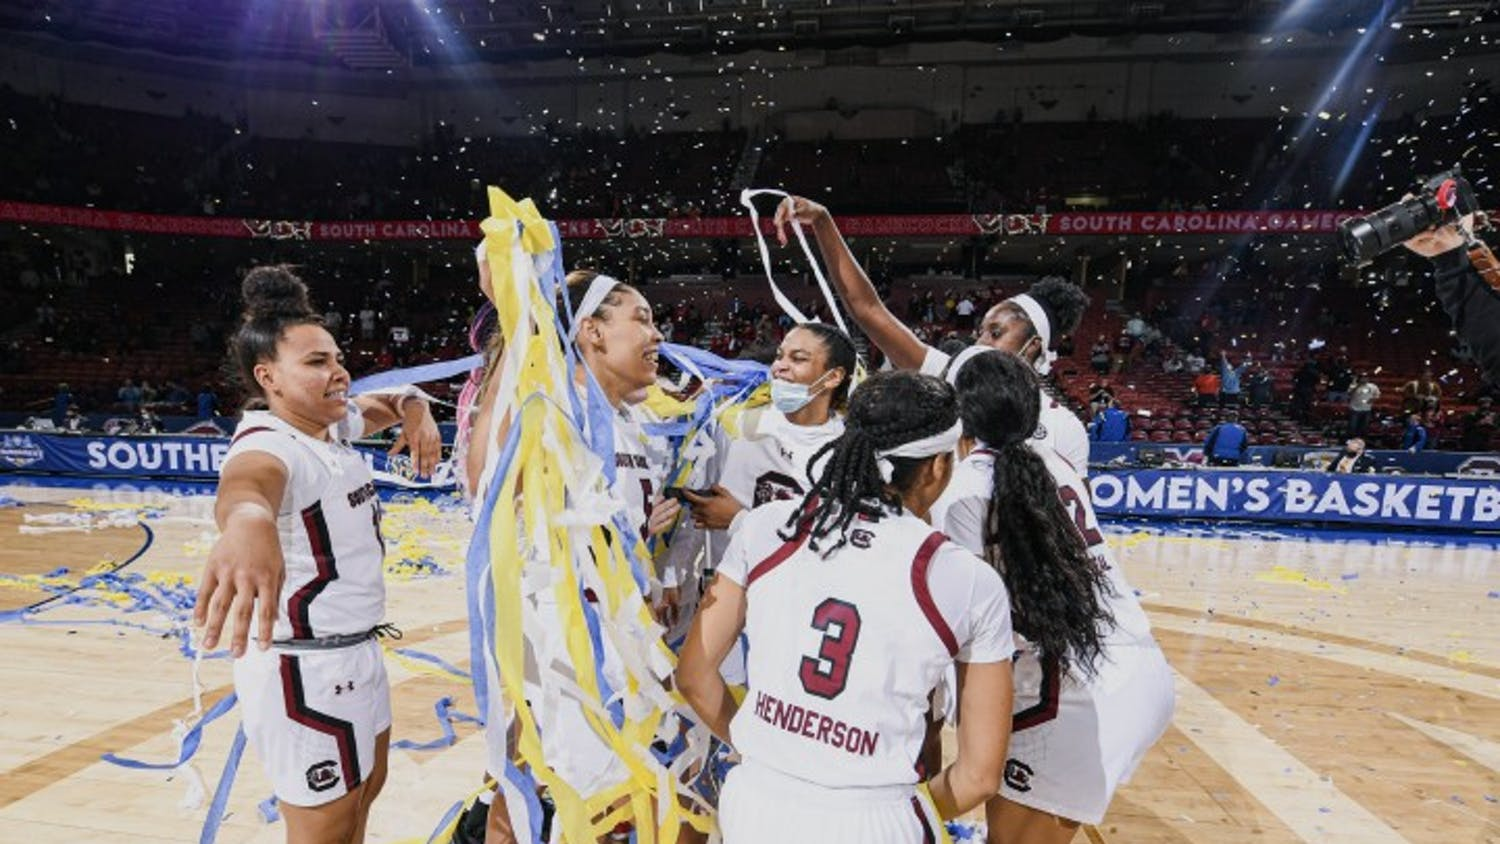 Members of the South Carolina women's basketball team celebrate after defeating Georgia 67-62 in the SEC Championship. This is the team's sixth SEC championship win in seven years.